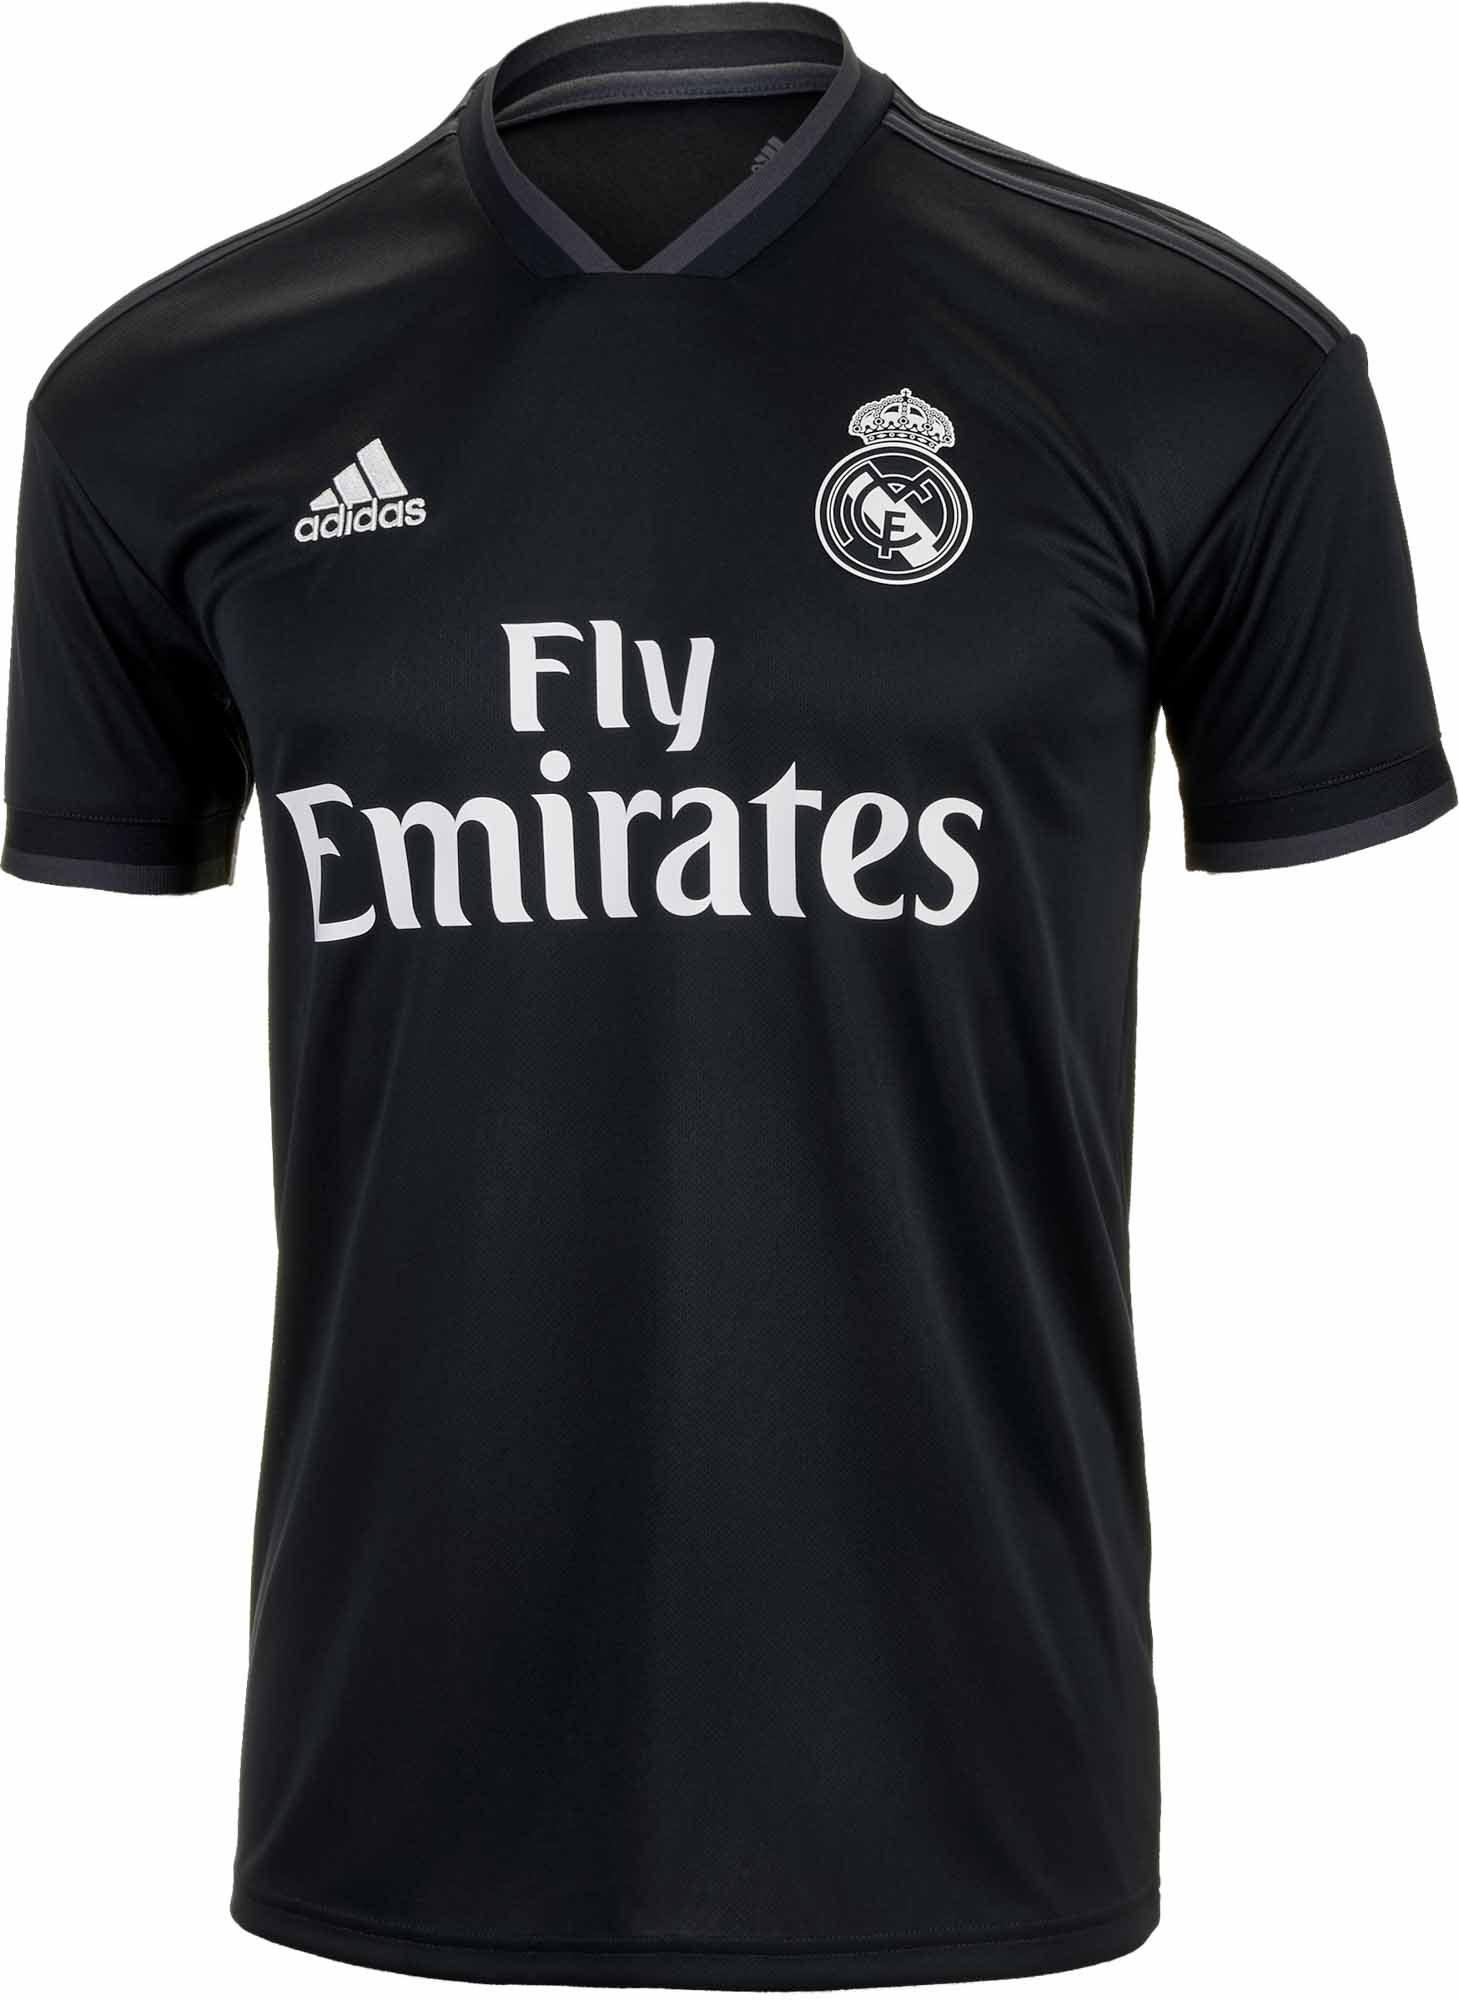 055c6cc022f 2018 19 adidas Real Madrid Away Jersey - Soccer Master